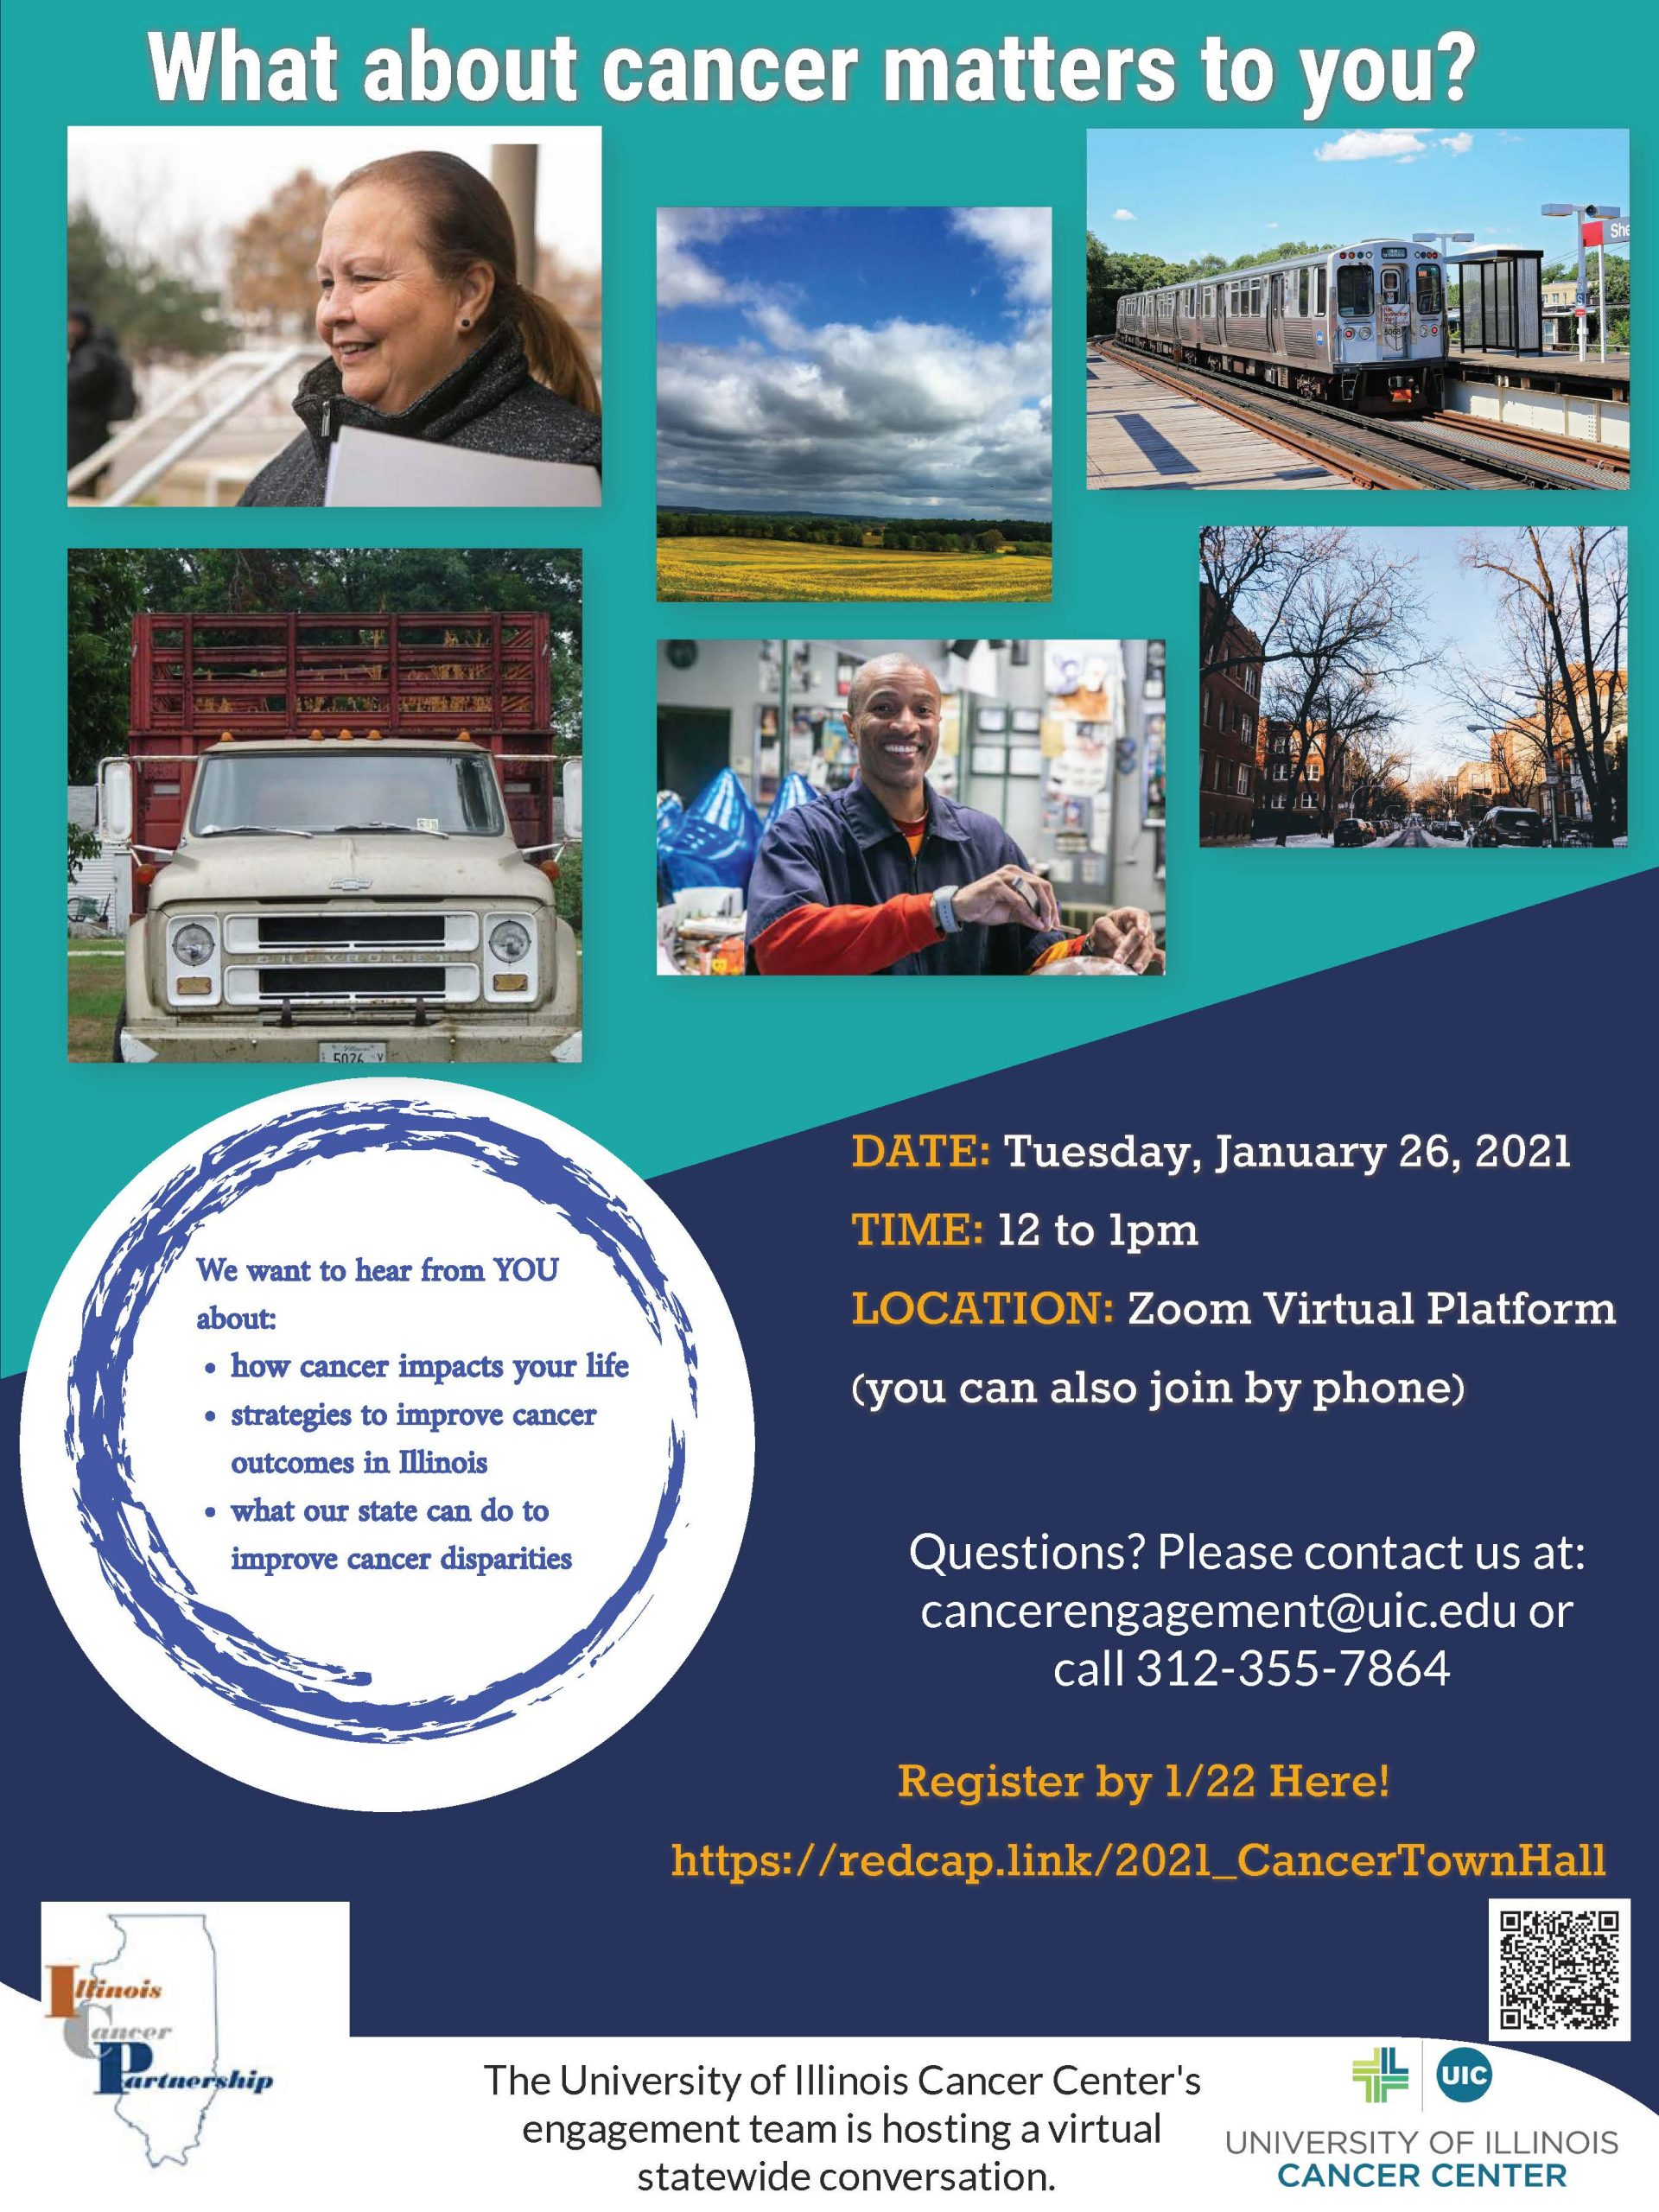 Cancer Community Conversation flyer with photos and seminar information